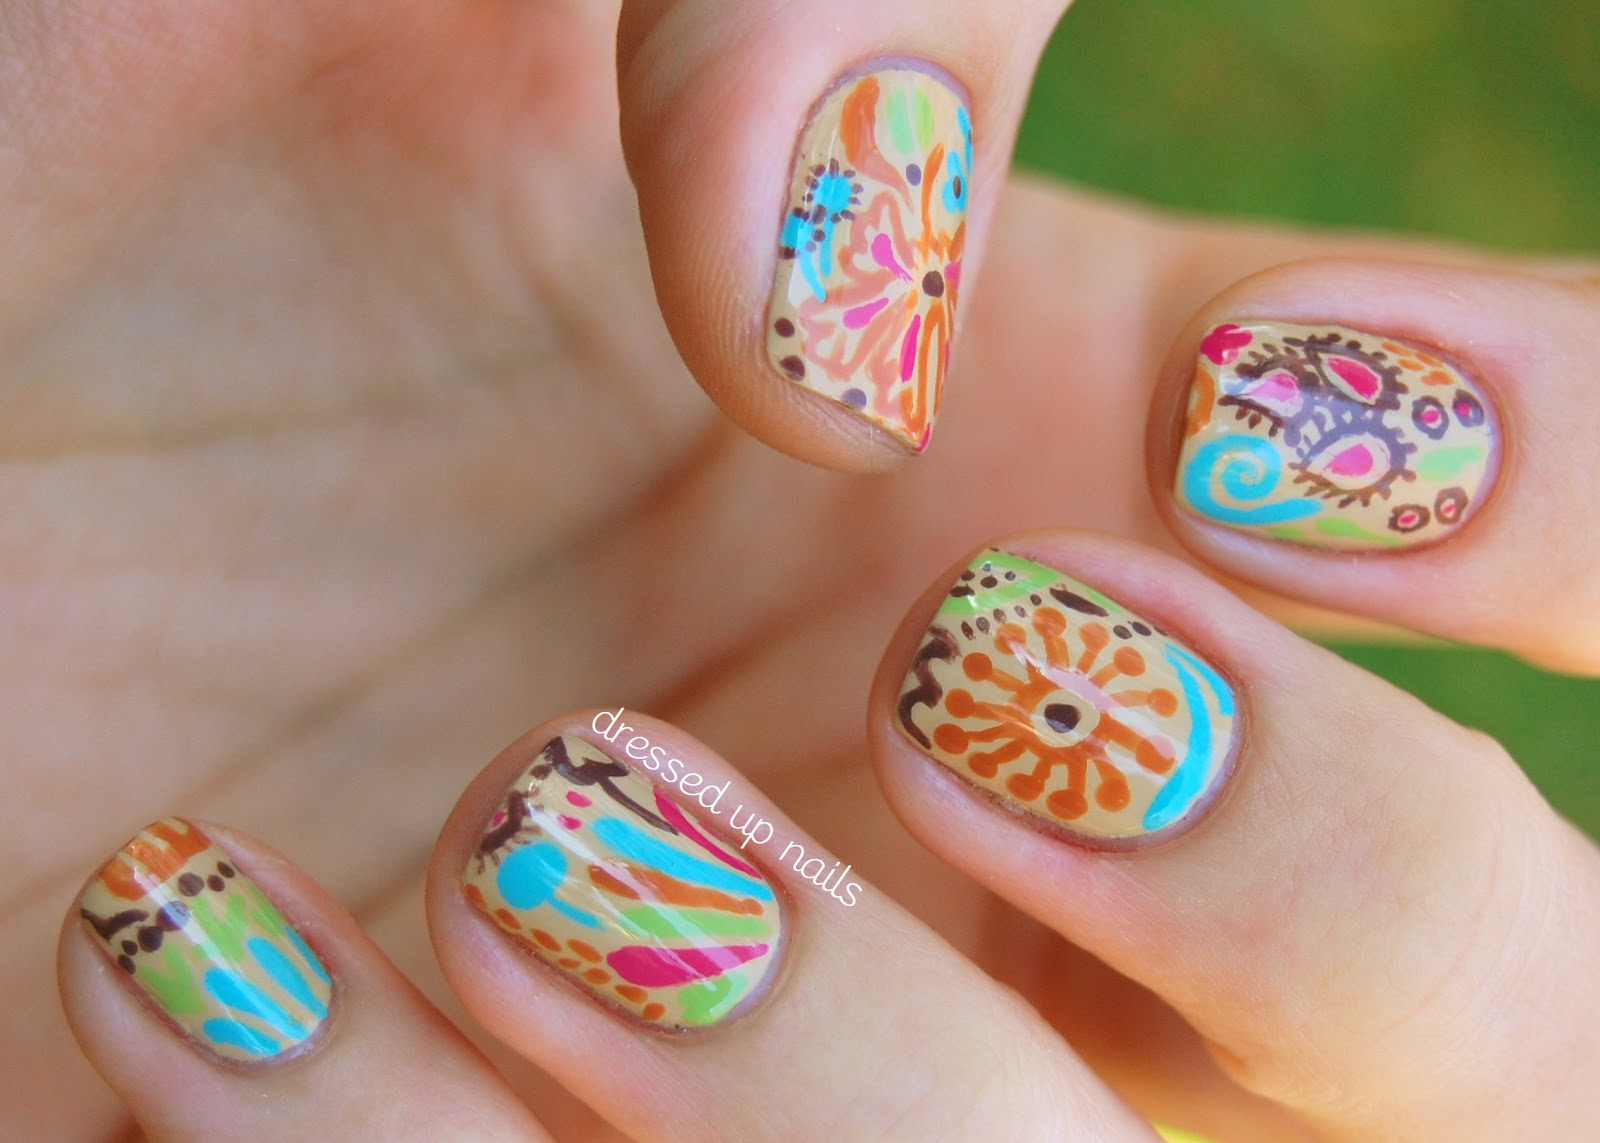 ... Nail art design colors 2015/16 13 Cute Pastel Nail Art Colors 21